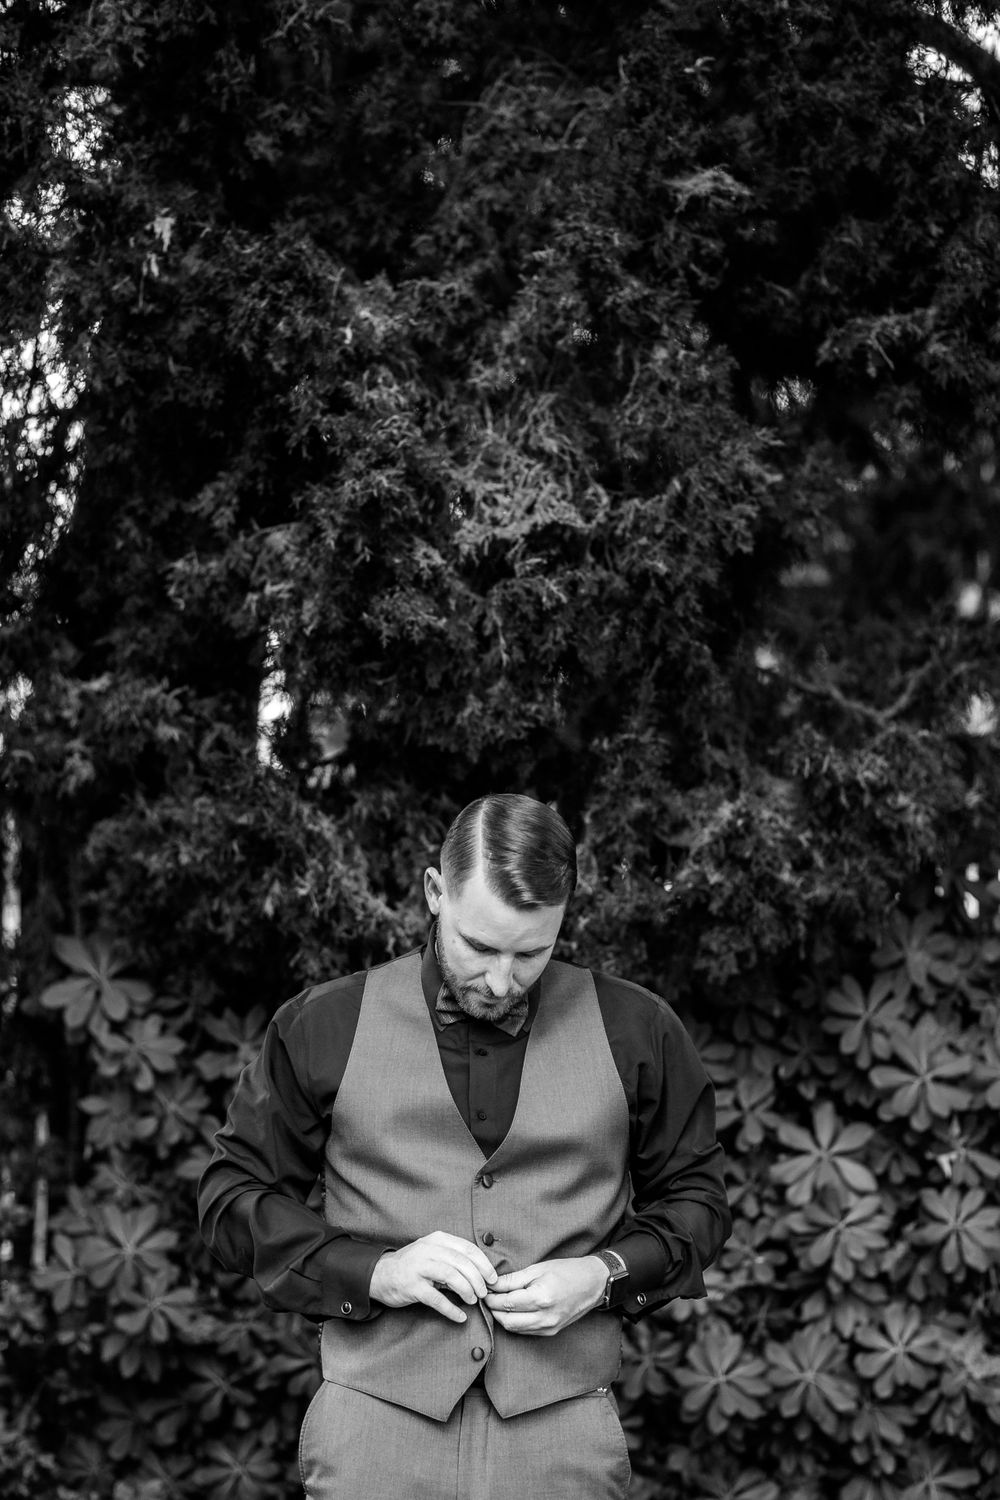 rebecca skidgel photography redwood elopement uc davis northern california groom getting ready ring details smiling